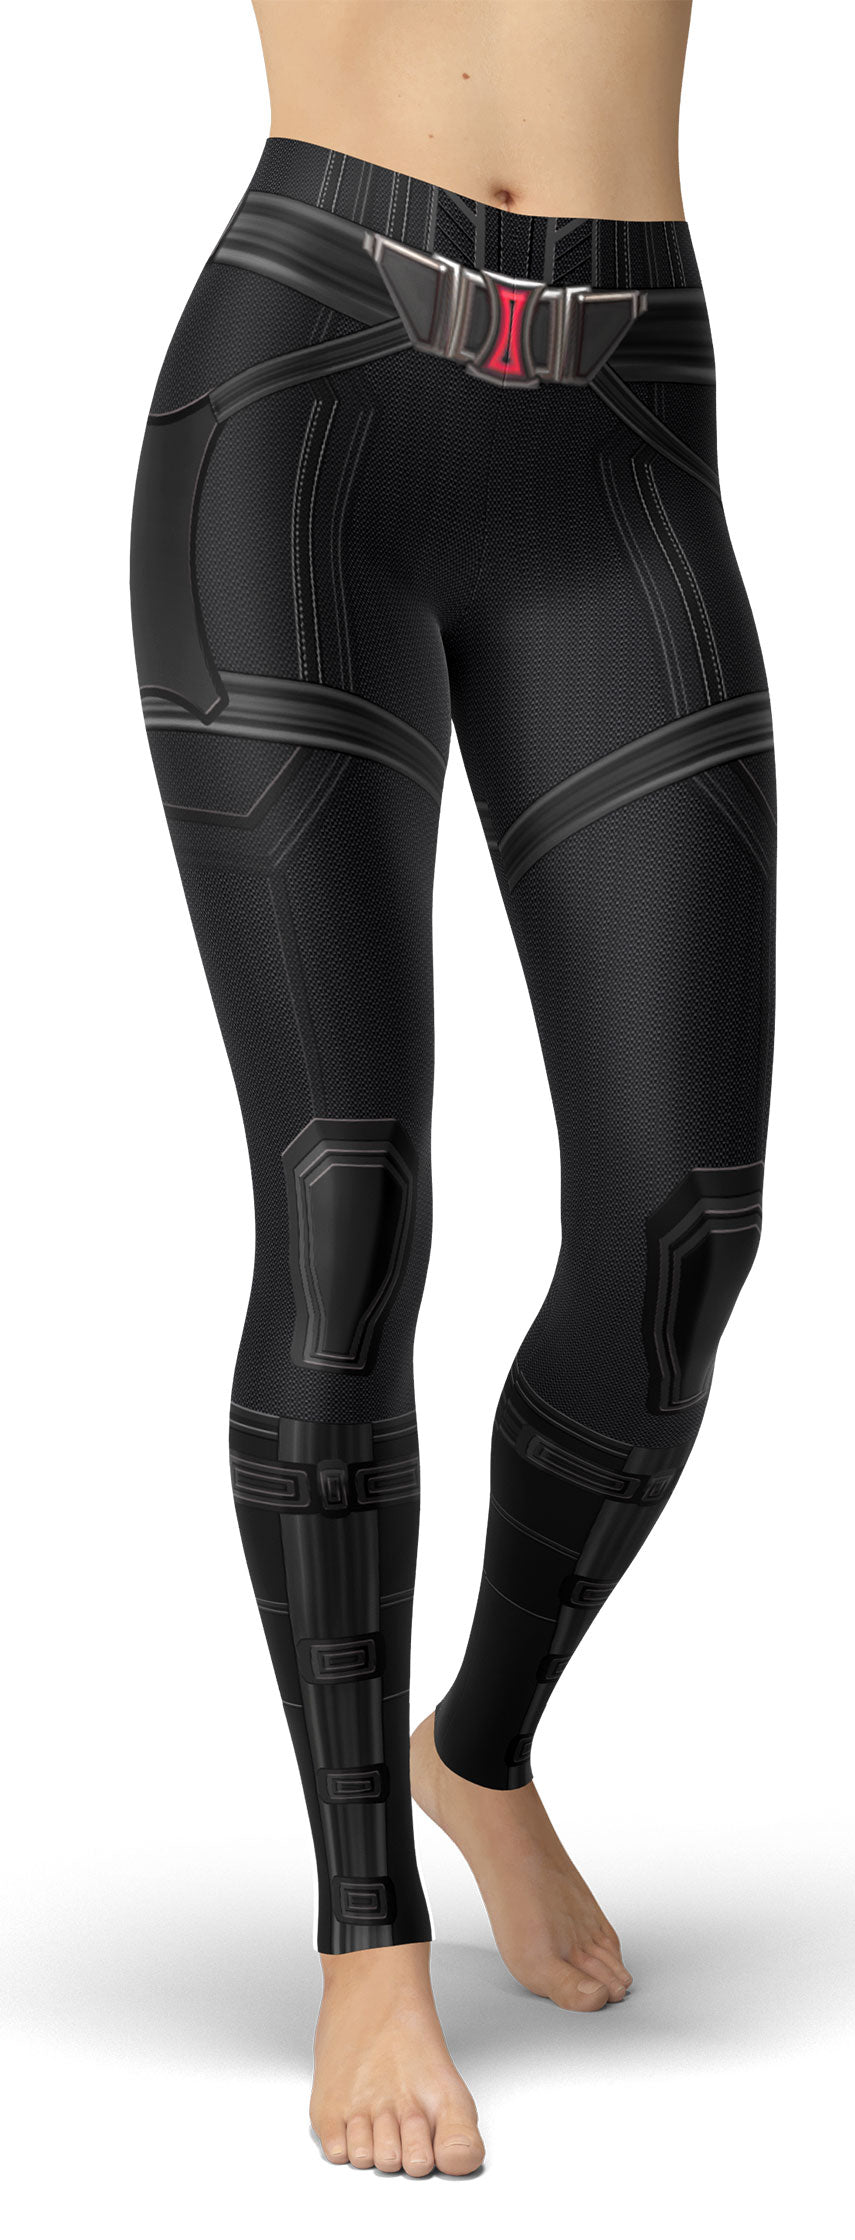 Avengers: Endgame Black Widow Leggings